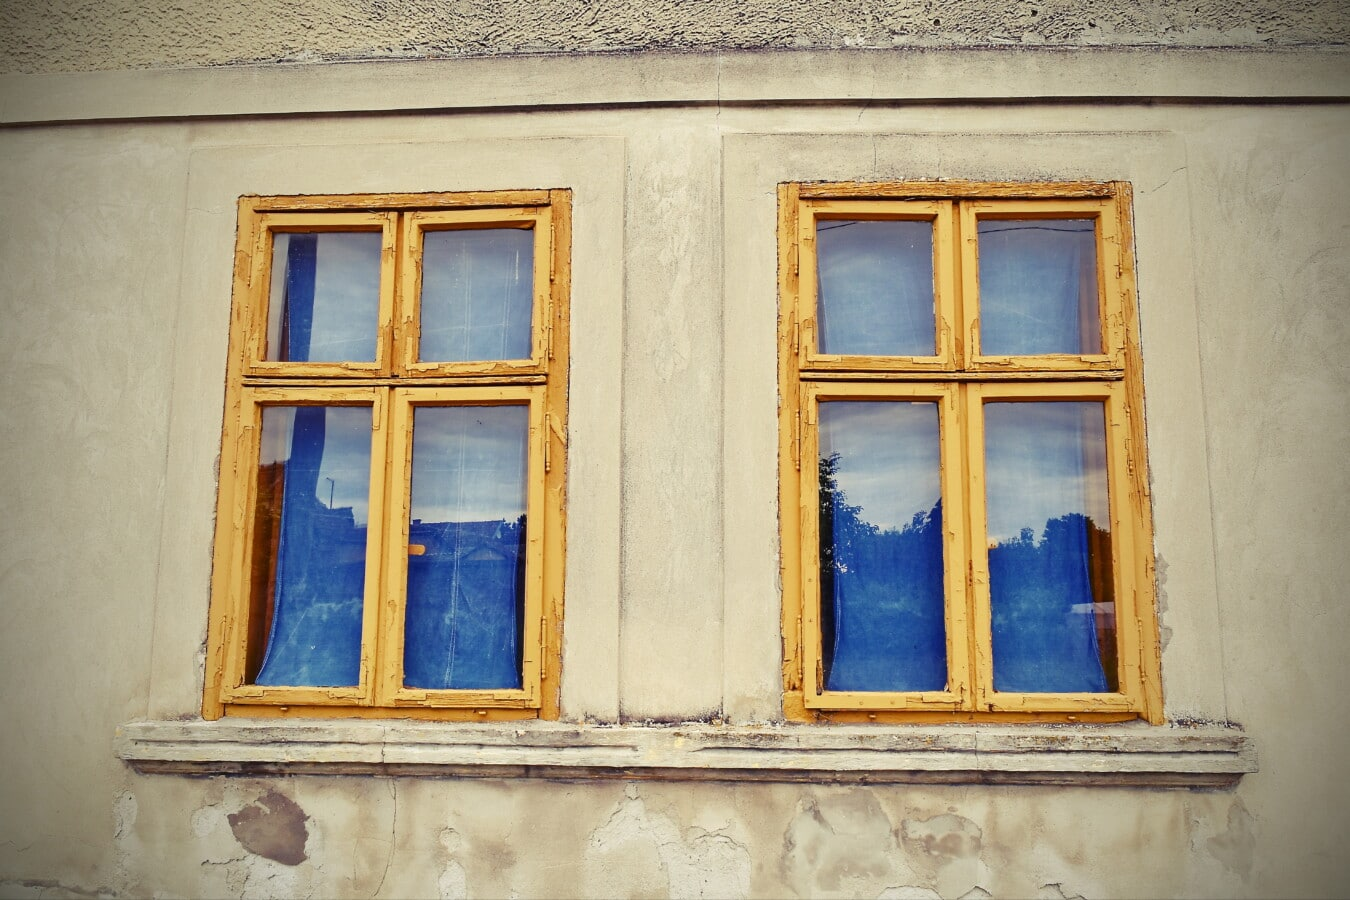 abandoned, windows, decay, old, facade, glass, building, architecture, house, wood